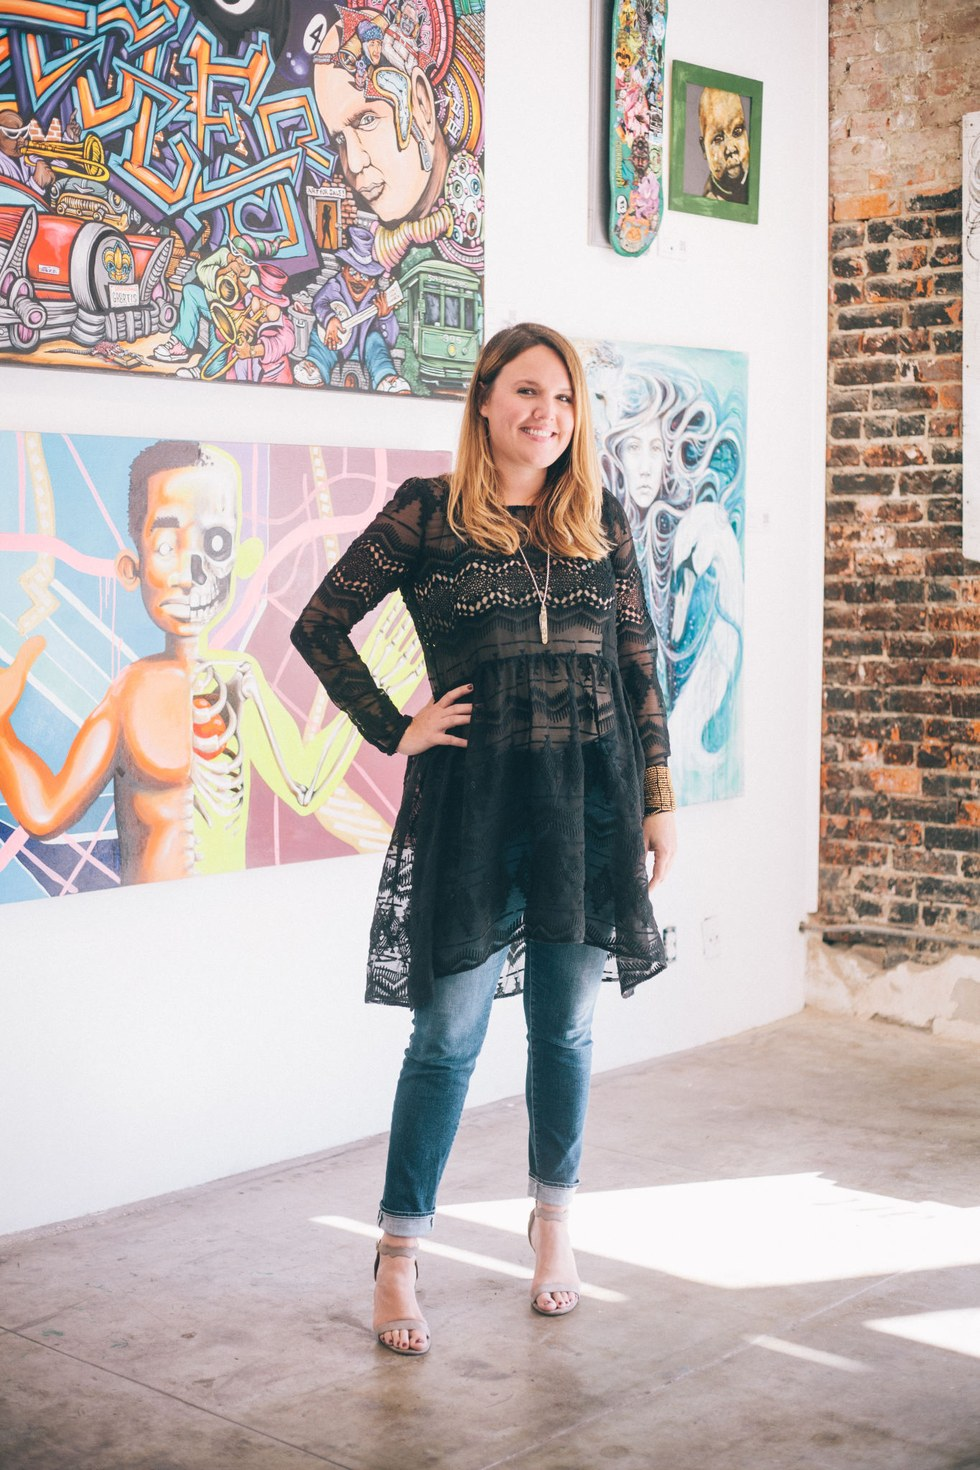 Catherine Todd, co-founder, Where Y\u2019art